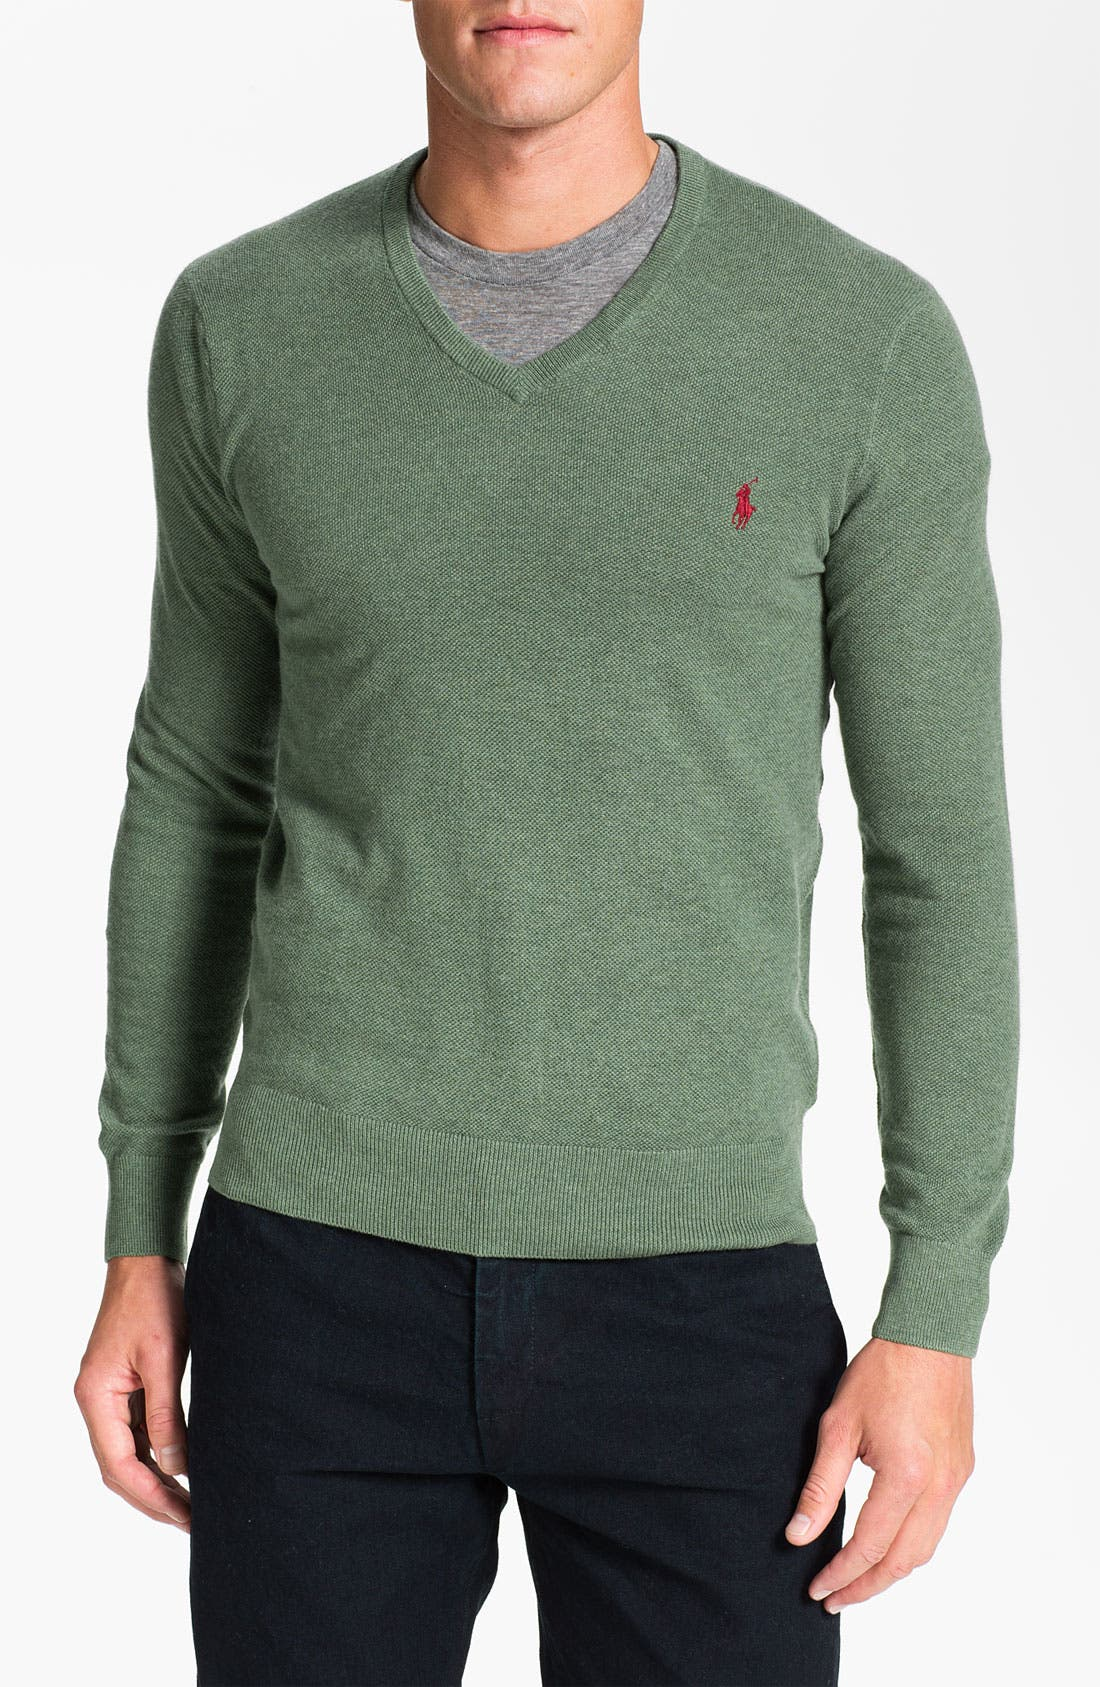 Alternate Image 1 Selected - Polo Ralph Lauren V-Neck Cotton & Cashmere Classic Fit Sweater